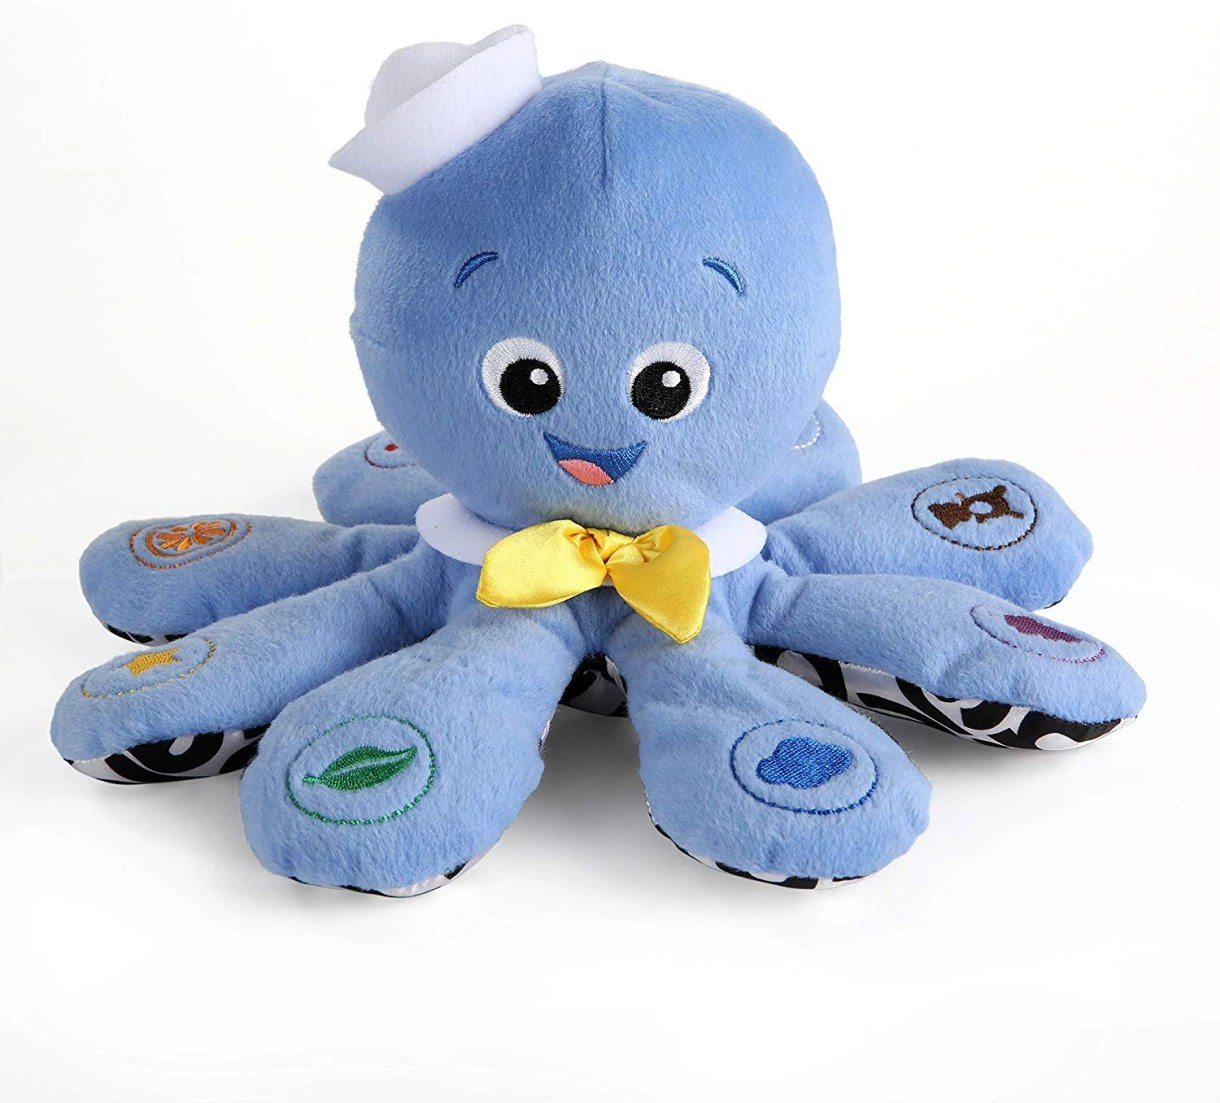 Baby Einstein octopus plush toy